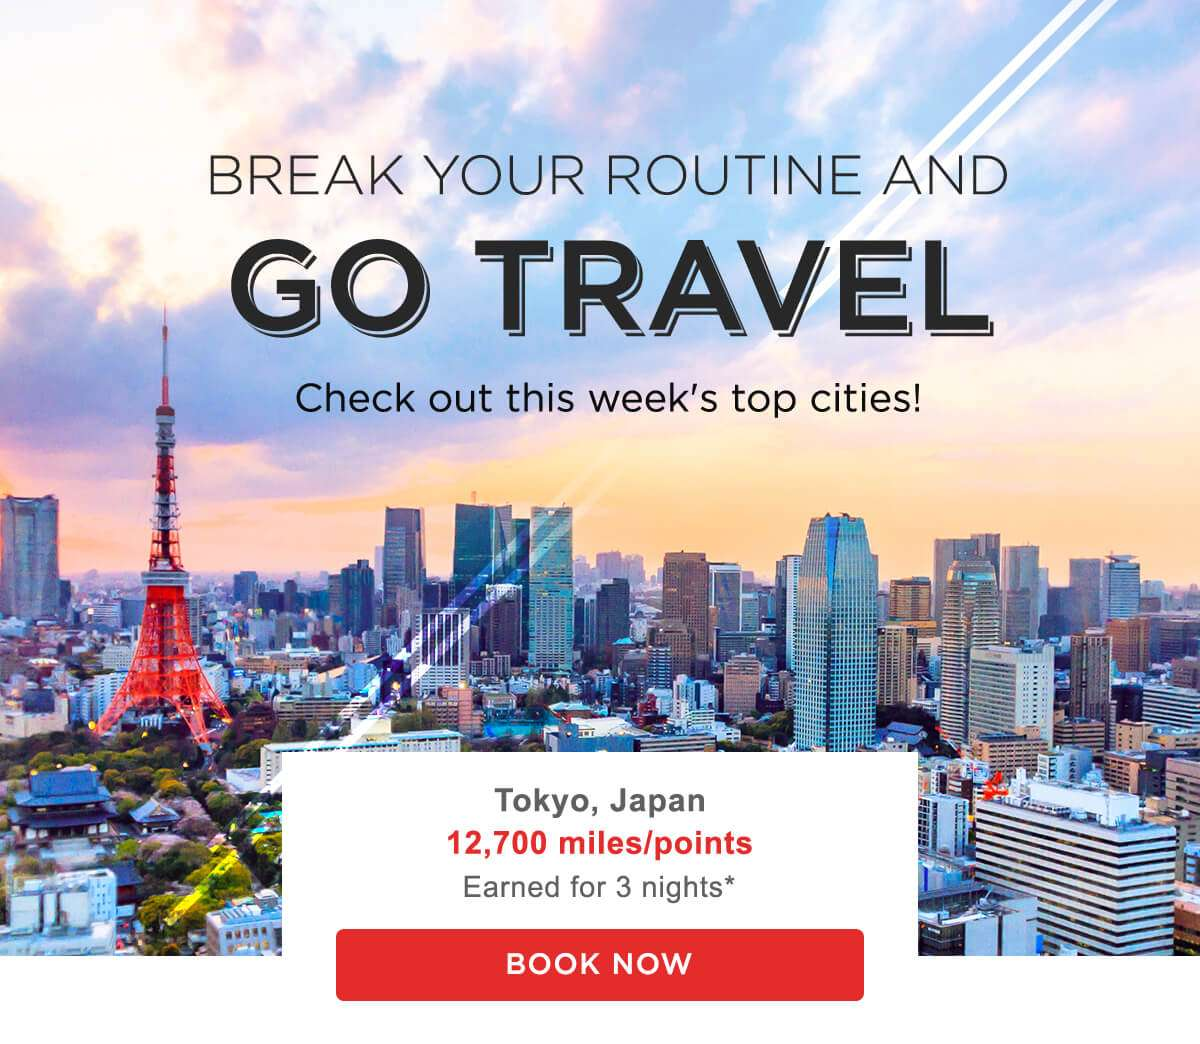 Break your routine and go travel! Check out this week's top cities!